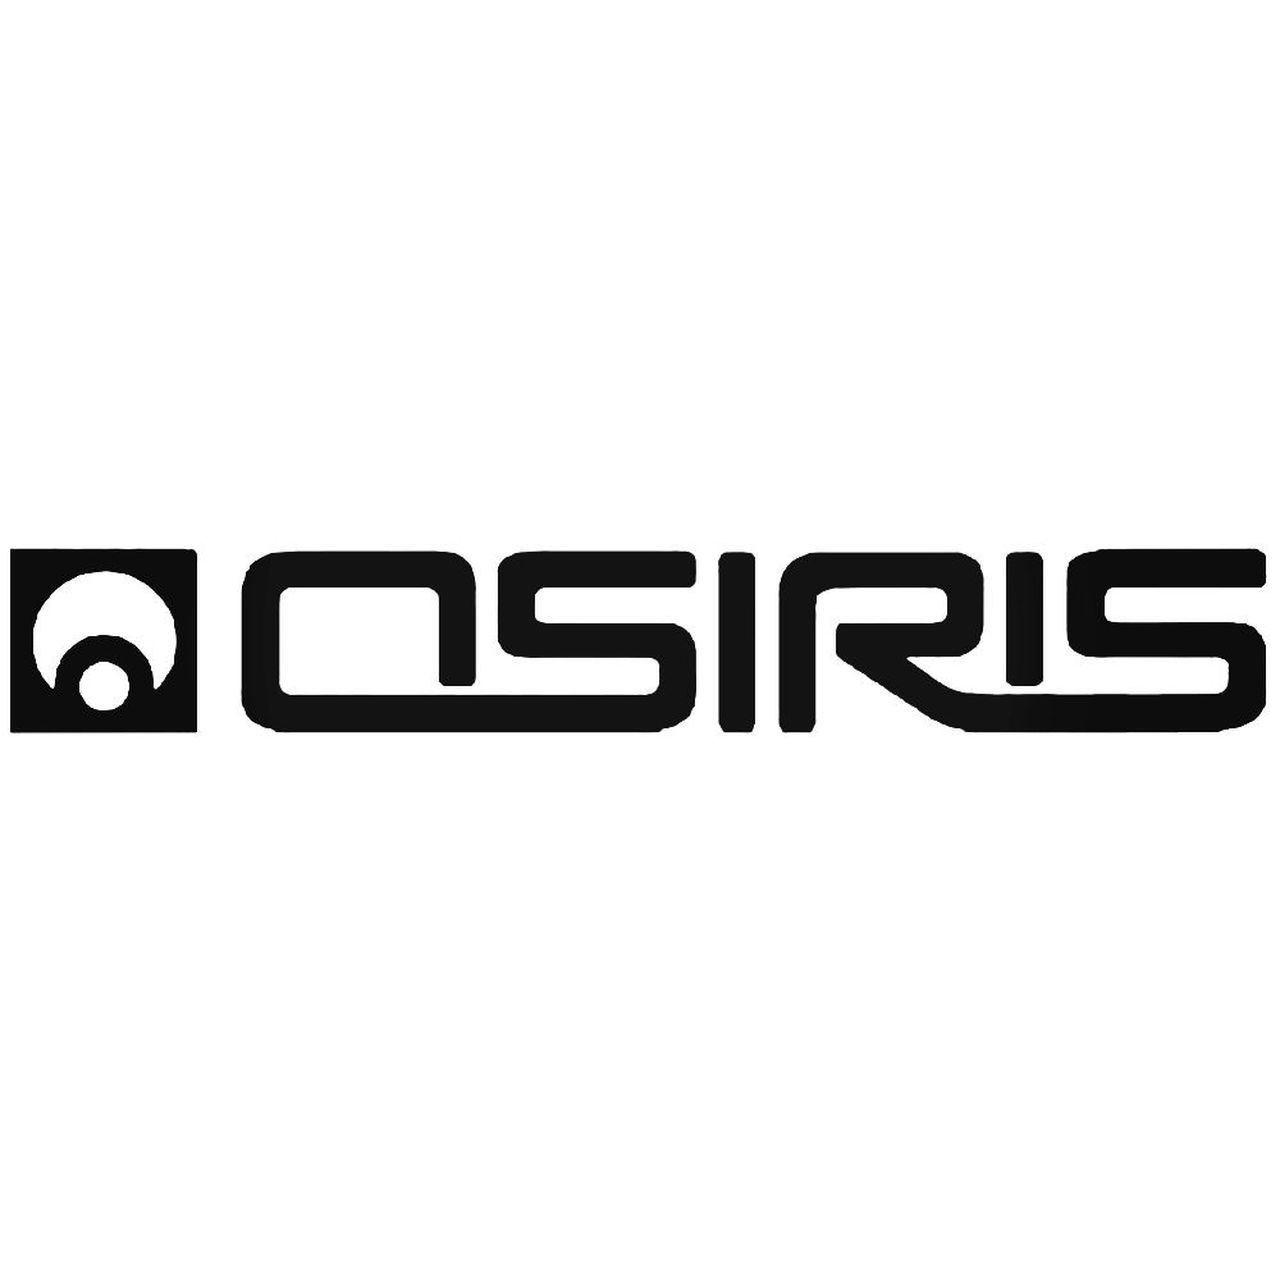 Osiris Logo - Osiris Circle Skate Logo 1 Vinyl Decal Sticker